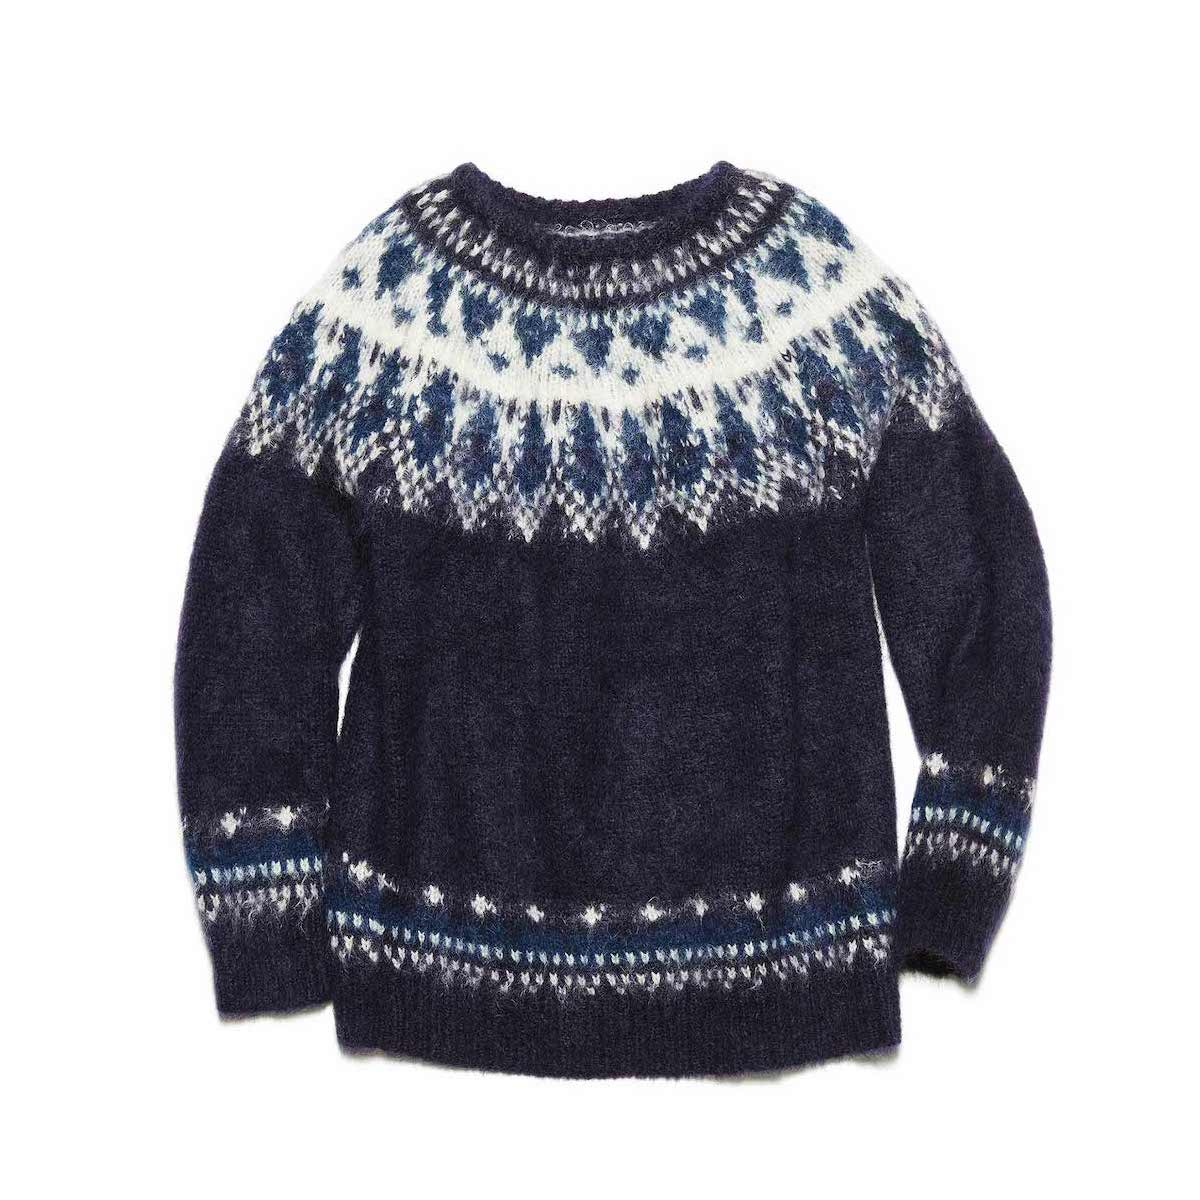 uniform experiment / NORDIC MOHAIR CREWNECK KNIT (Navy)